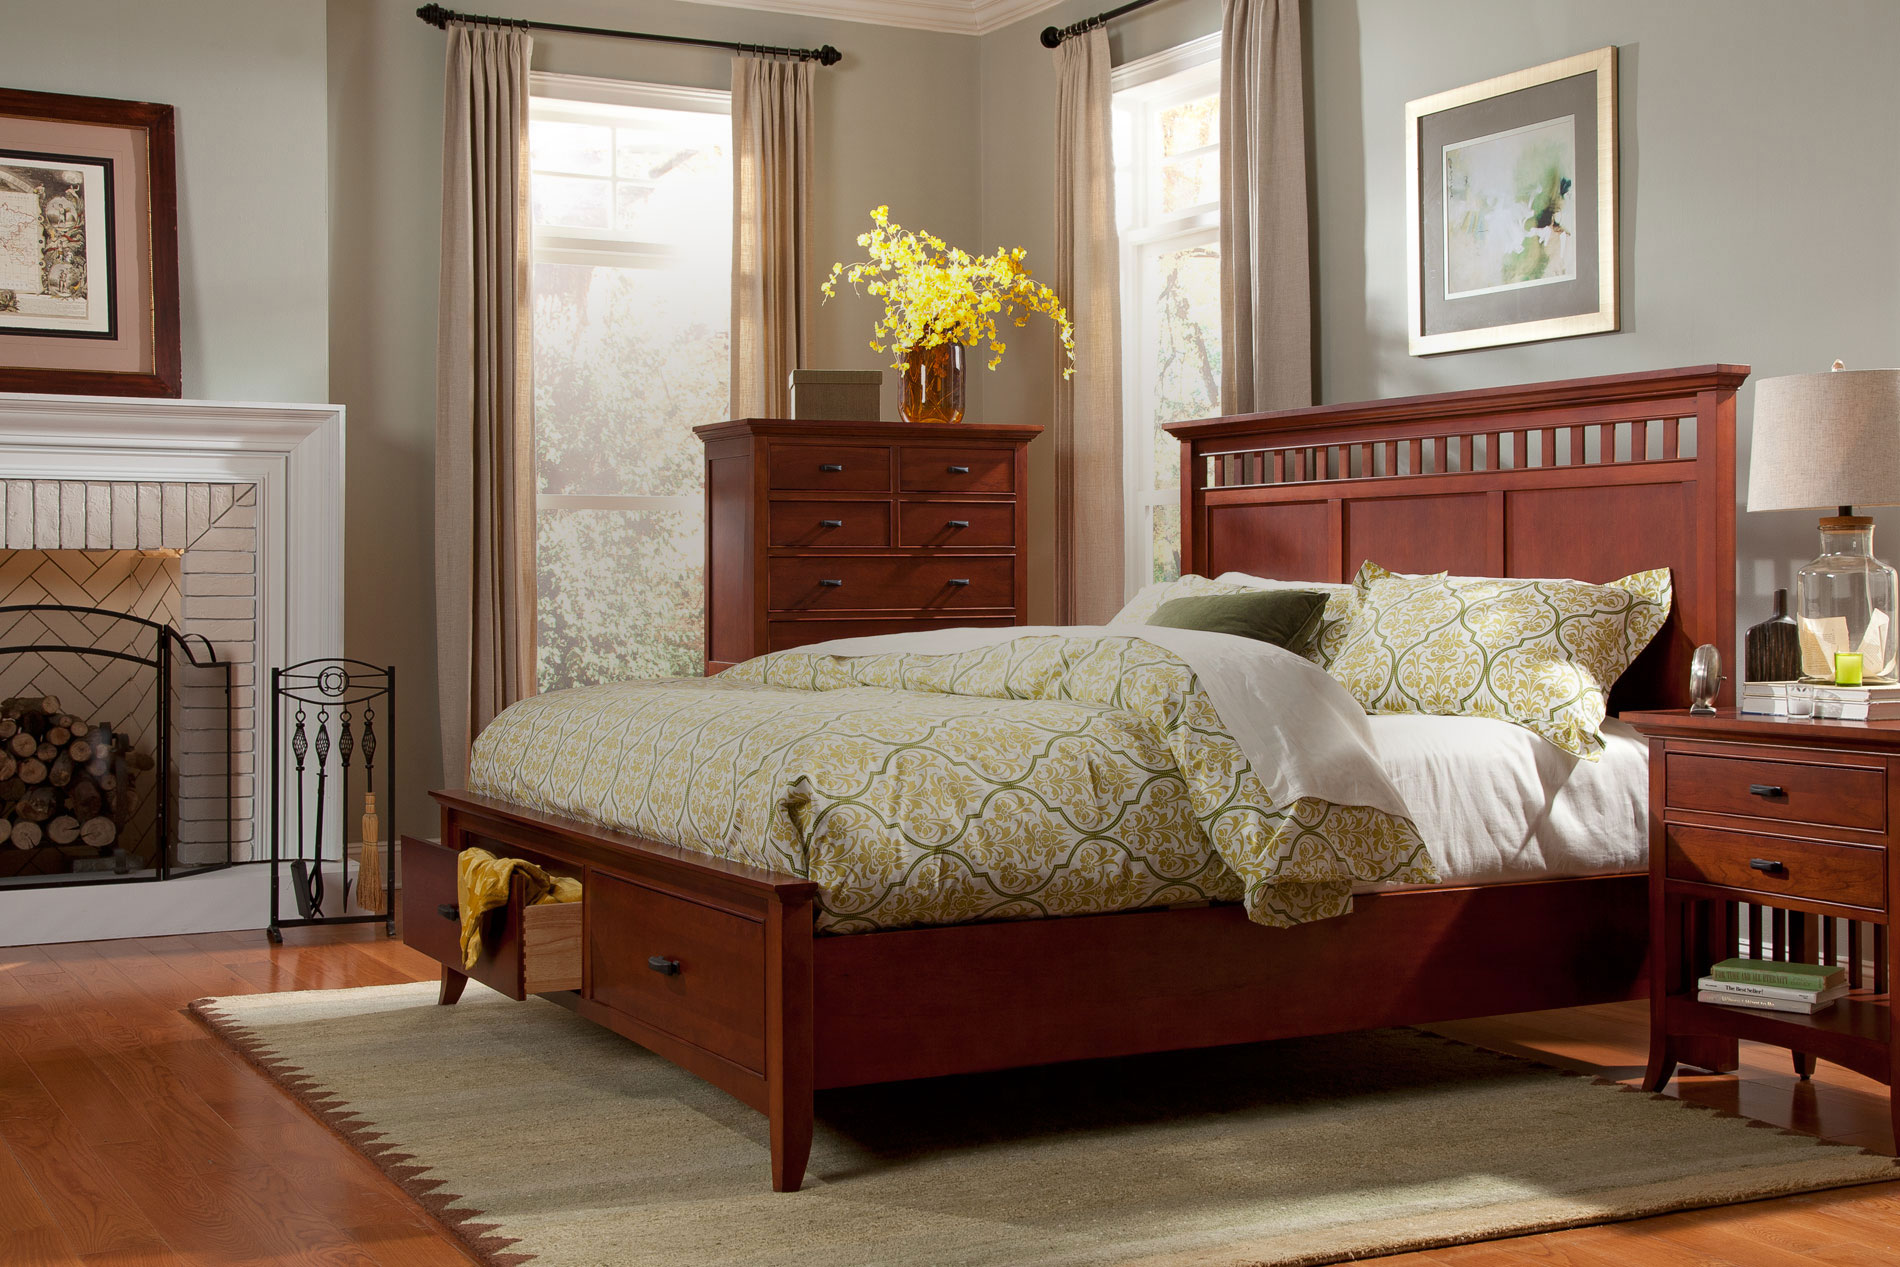 Admirable romance bedding with headboards combined with rugs and sidetables also lamps plus sofas from cresent furniture for your home furniture ideas